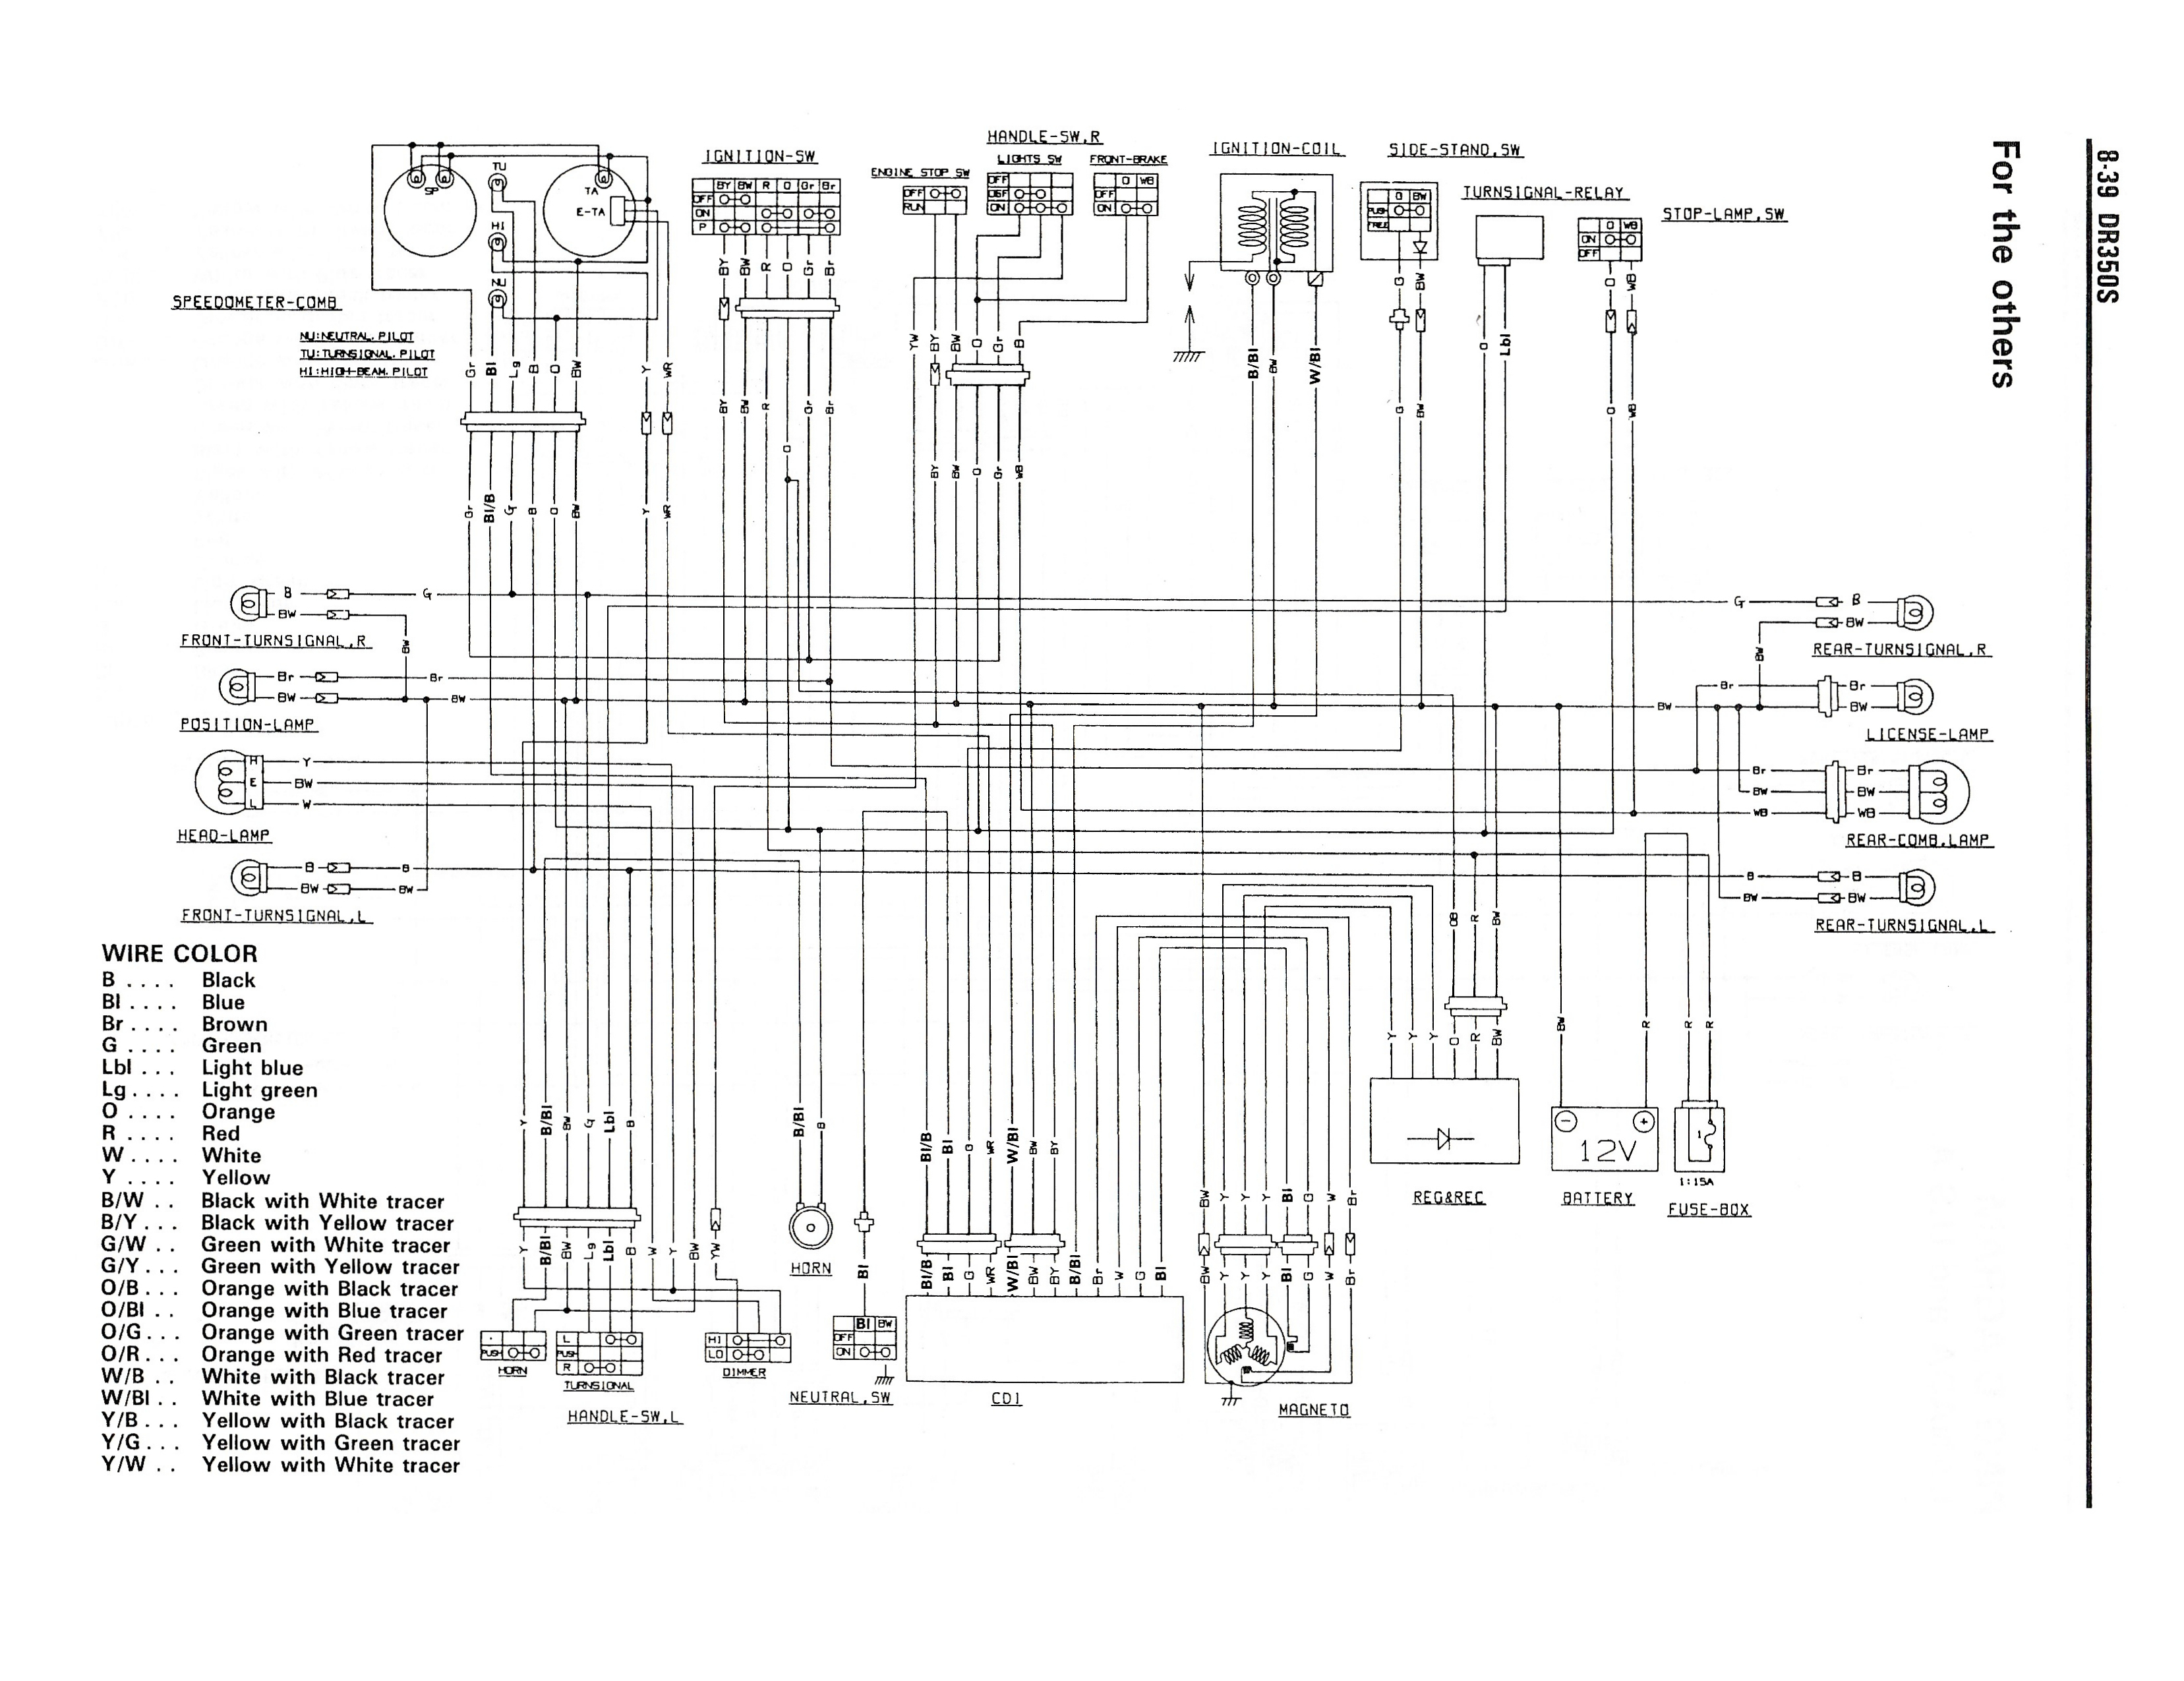 Wiring diagram for the DR350 S (1990 and later models - Other countries)